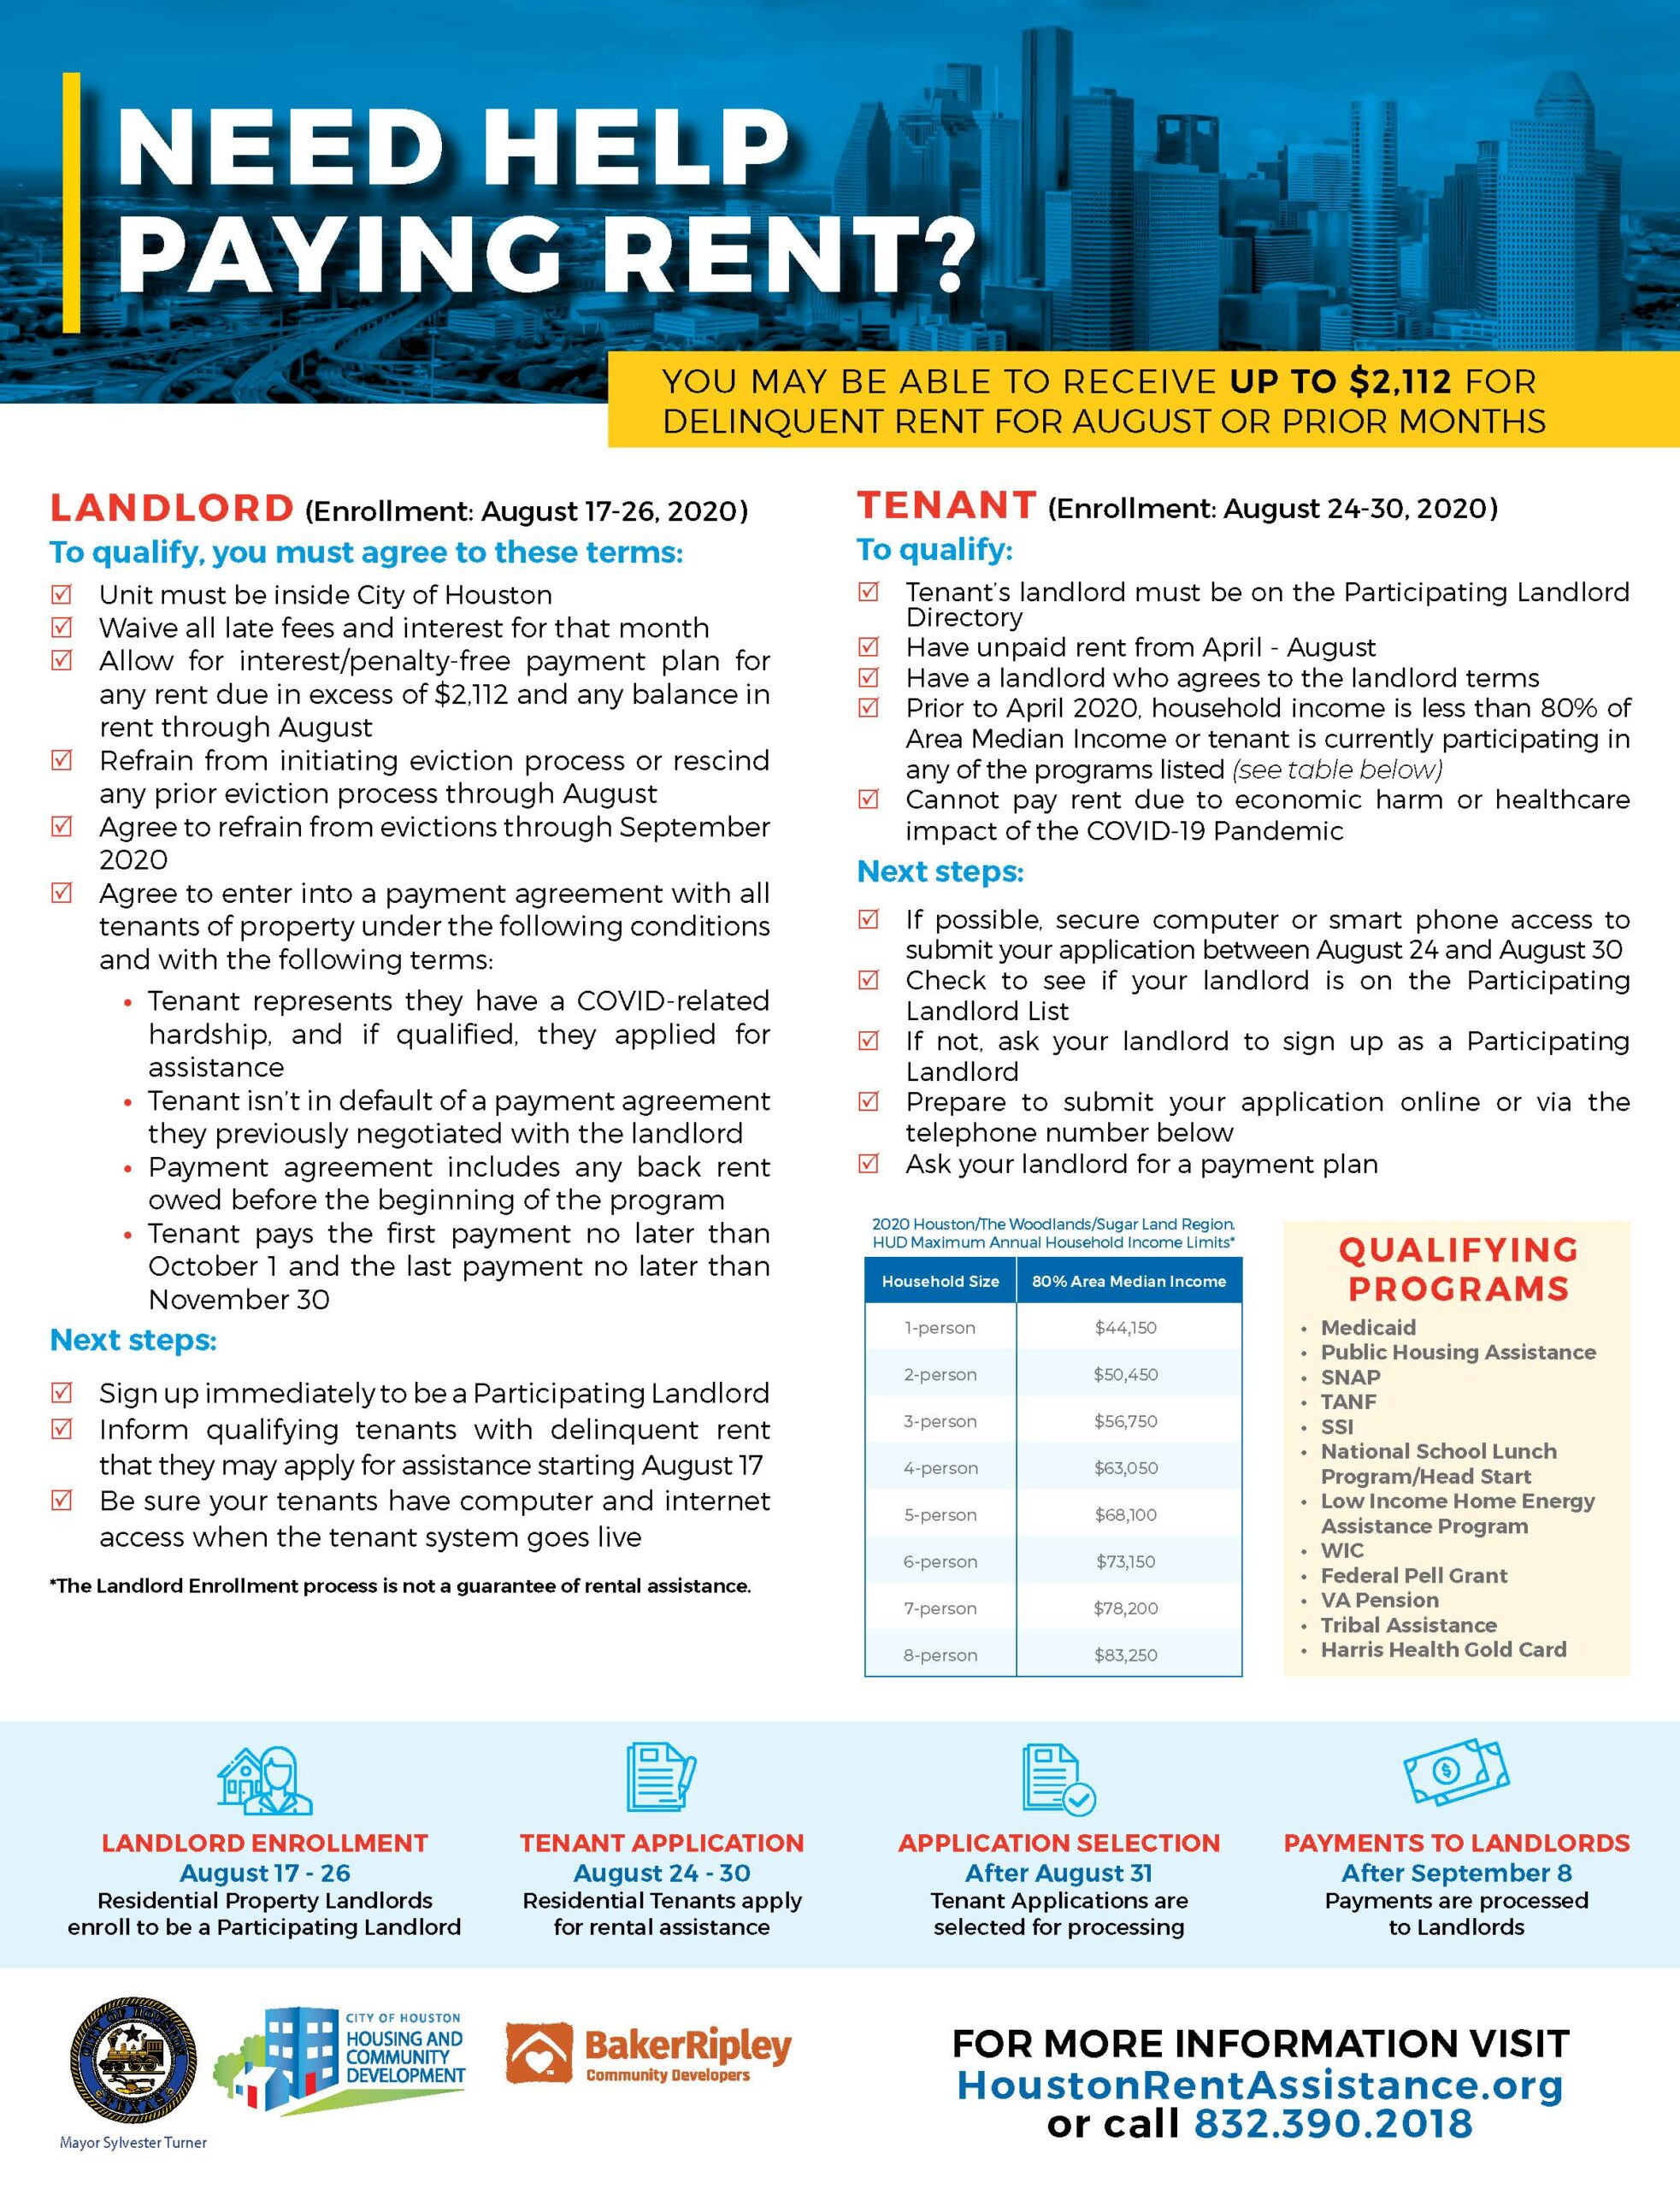 Flyer for the rent relief program. Text says: NEED HELP PAYING RENT? YOU MAY BE ABLE TO RECEIVE UP TO $2,112 FOR DELINQUENT RENT FOR AUGUST OR PRIOR MONTHS. LANDLORD (Enrollment: August 17-26, 2020) To qualify, you must agree to these terms: 5 Unit must be inside City of Houston 5 Waive all late fees and interest for that month 5 Allow for interest/penalty-free payment plan for any rent due in excess of $2,112 and any balance in rent through August 5 Refrain from initiating eviction process or rescind any prior eviction process through August 5 Agree to refrain from evictions through September 2020 5 Agree to enter into a payment agreement with all tenants of property under the following conditions and with the following terms: ∙ Tenant represents they have a COVID-related hardship, and if qualified, they applied for assistance ∙ Tenant isn't in default of a payment agreement they previously negotiated with the landlord ∙ Payment agreement includes any back rent owed before the beginning of the program ∙ Tenant pays the first payment no later than October 1 and the last payment no later than November 30 Next steps: 5 Sign up immediately to be a Participating Landlord 5 Inform qualifying tenants with delinquent rent that they may apply for assistance starting August 17 5 Be sure your tenants have computer and internet access when the tenant system goes live *The Landlord Enrollment process is not a guarantee of rental assistance. TENANT (Enrollment: August 24-30, 2020) To qualify: 5 Tenant's landlord must be on the Participating Landlord Directory 5 Have unpaid rent from April - August 5 Have a landlord who agrees to the landlord terms 5 Prior to April 2020, household income is less than 80% of Area Median Income or tenant is currently participating in any of the programs listed (see table below) 5 Cannot pay rent due to economic harm or healthcare impact of the COVID-19 Pandemic Next steps: 5 If possible, secure computer or smart phone access to submit your applicat